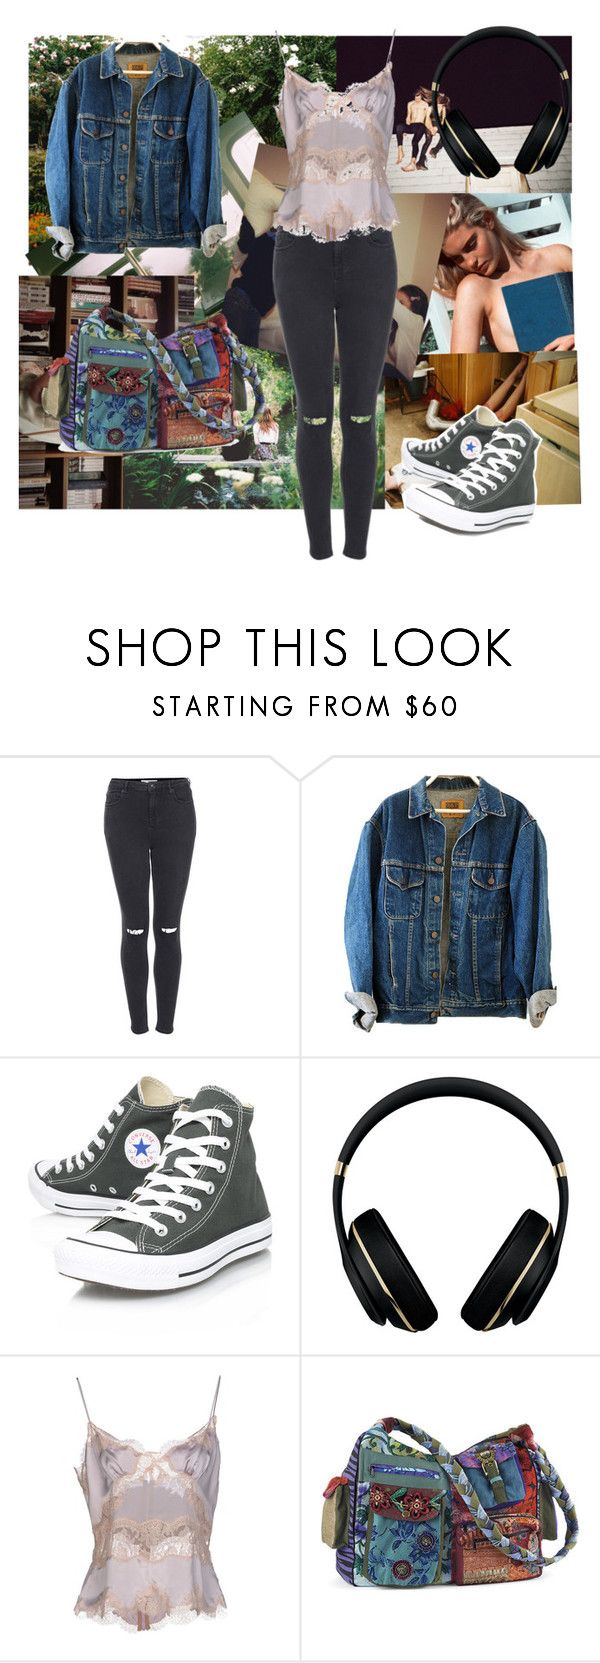 """""""Shh I don't care what you have to say"""" by antwings ❤ liked on Polyvore featuring Topshop, Converse, Alexander Wang, Dolce&Gabbana, women's clothing, women's fashion, women, female, woman and misses"""